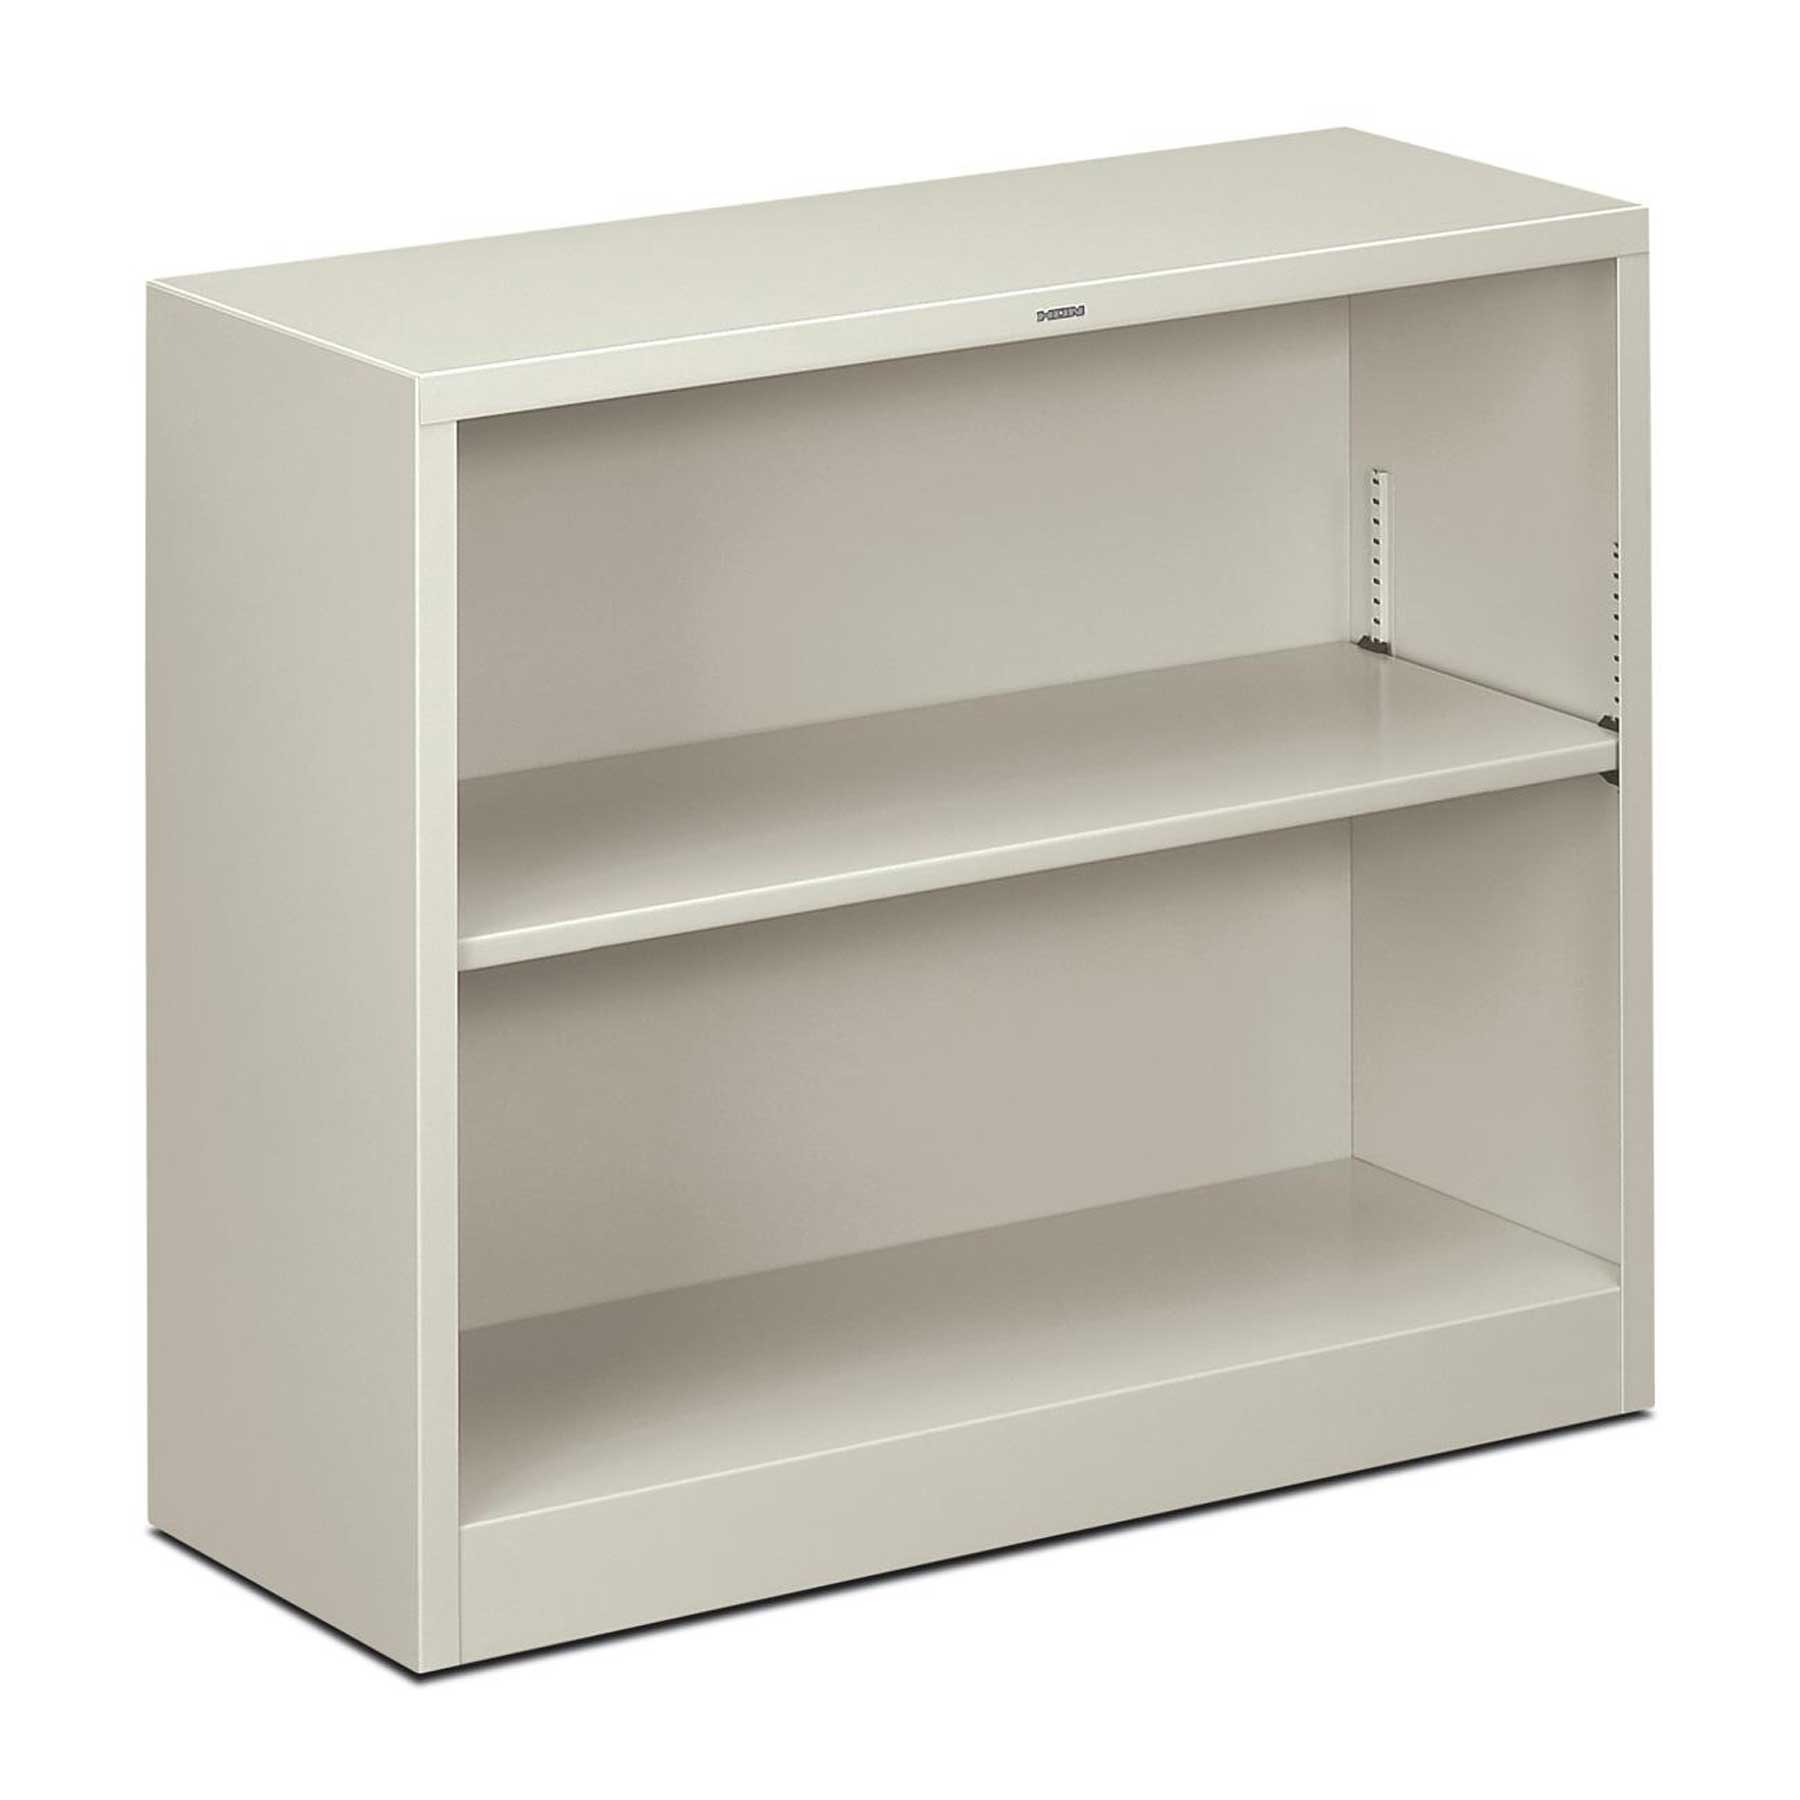 White HON metal bookcase with two shelves